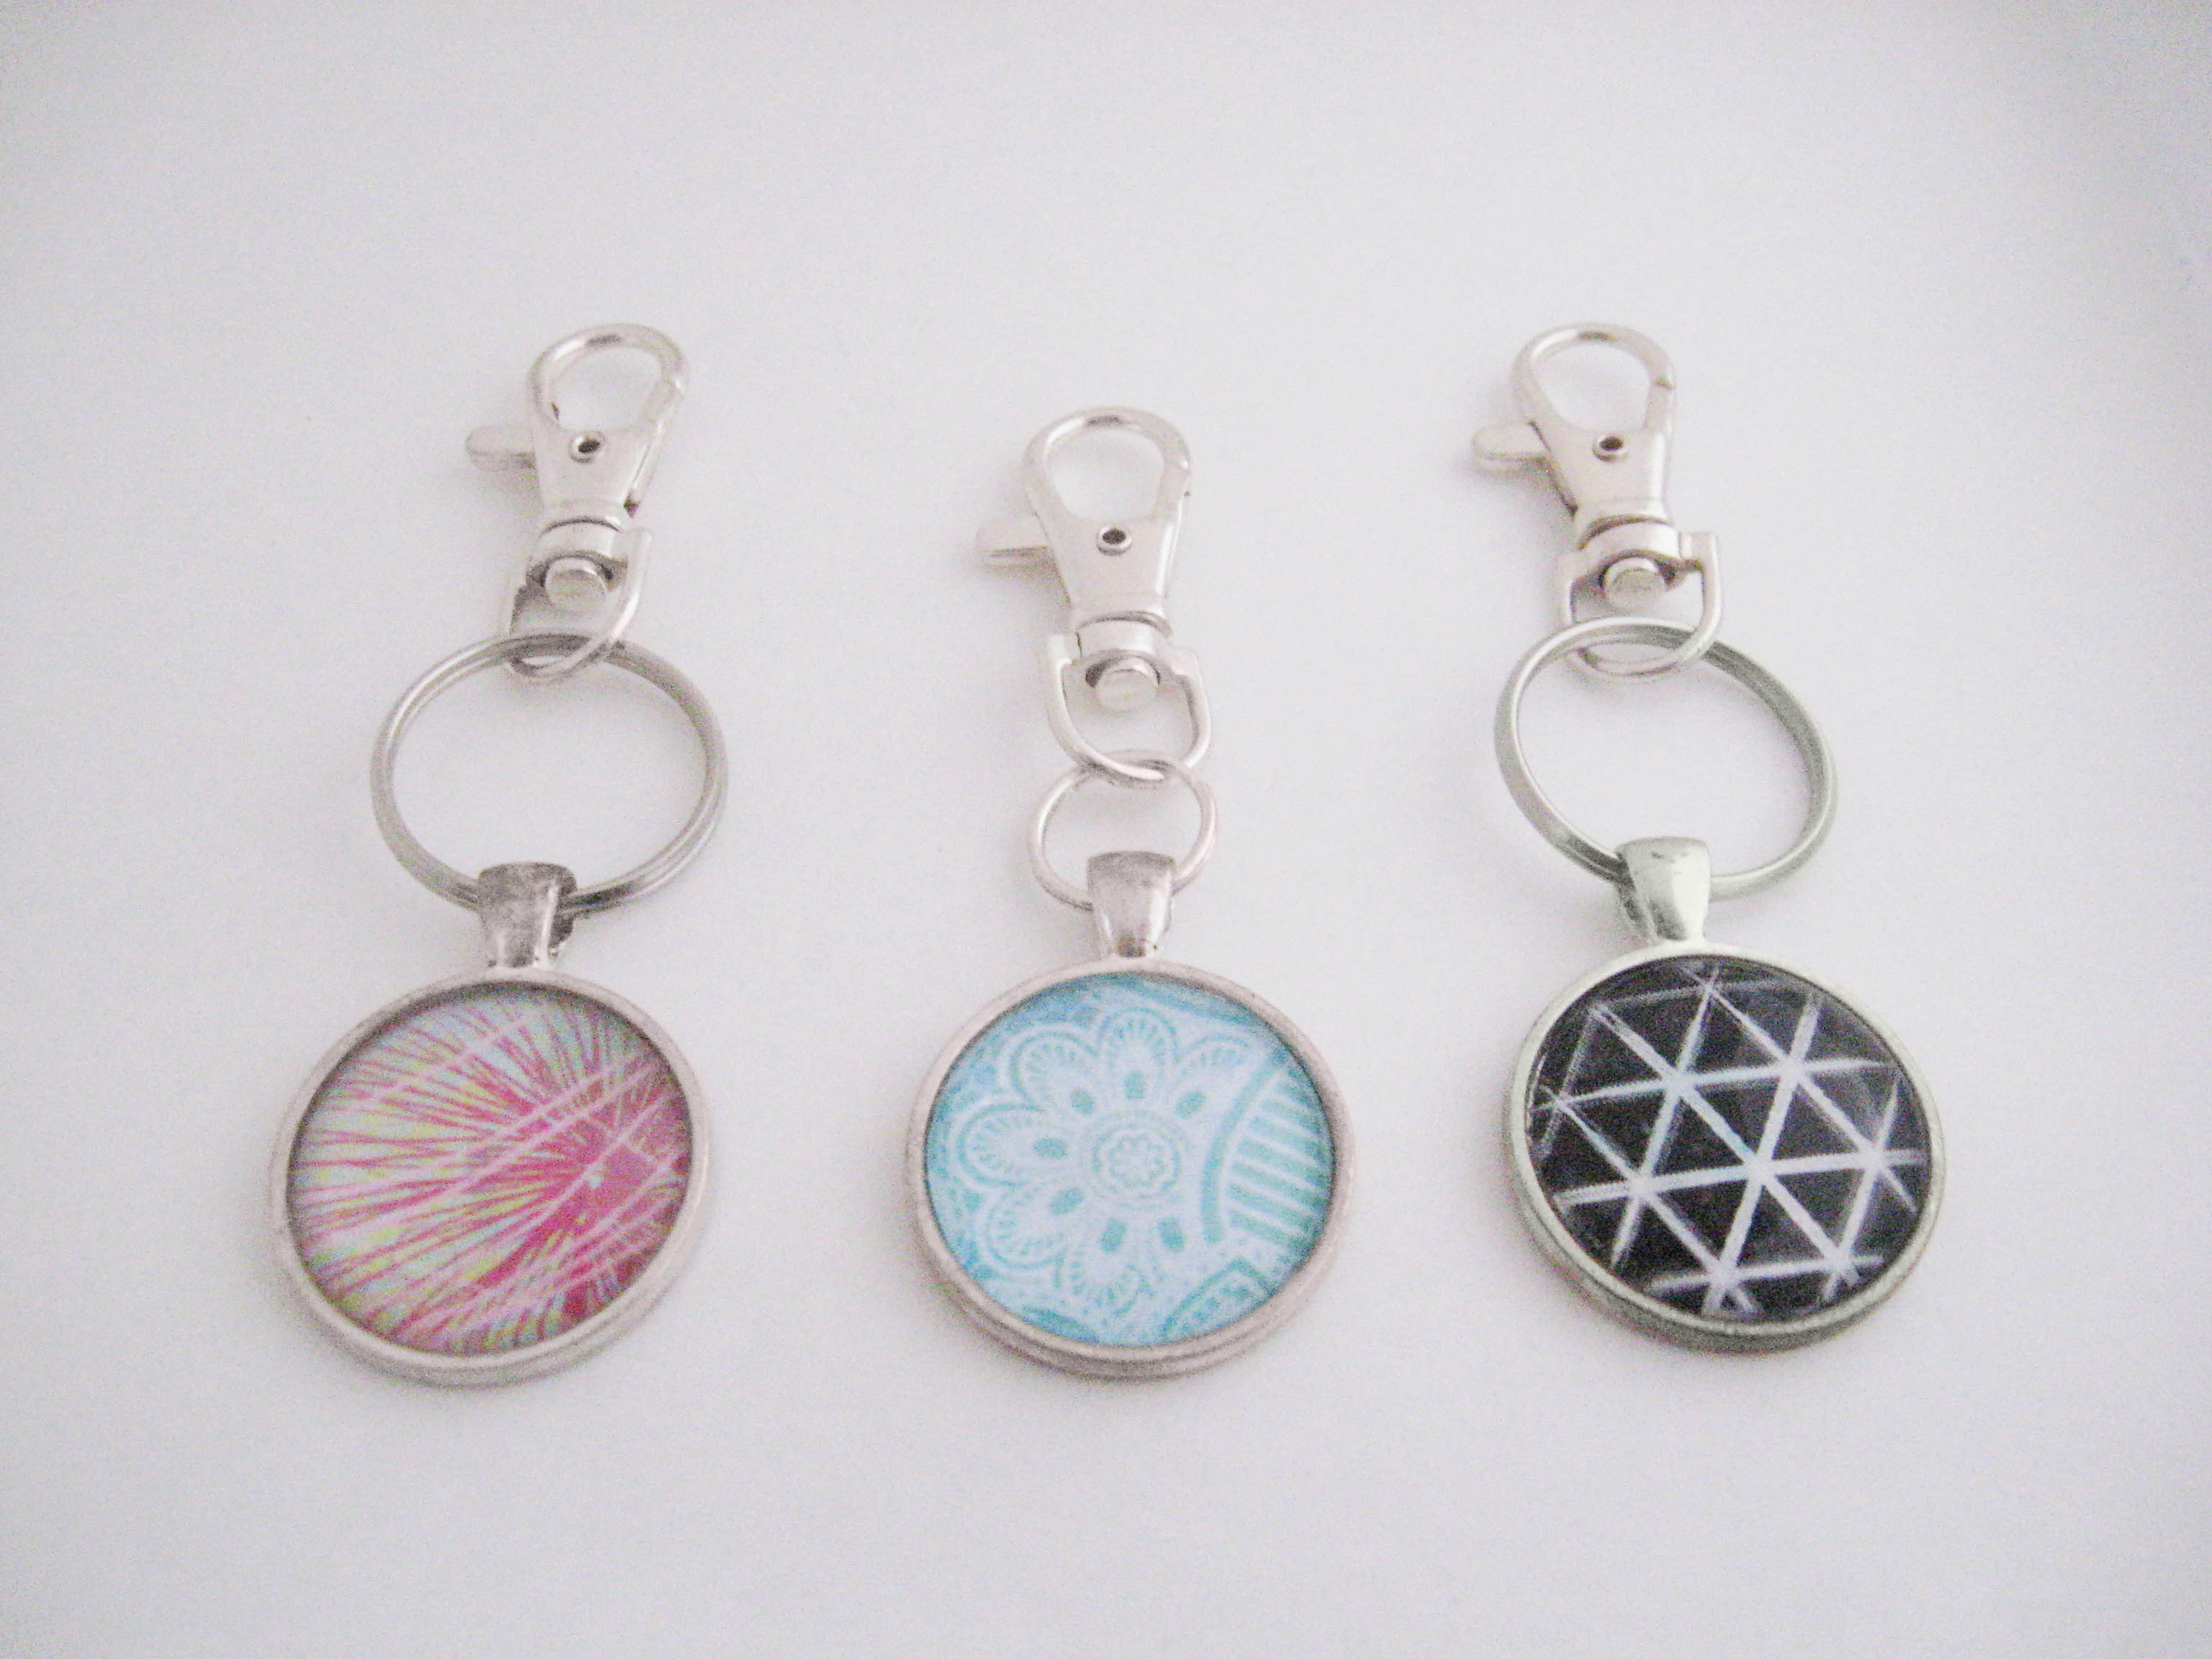 How To Make Your Own Keyring At Home